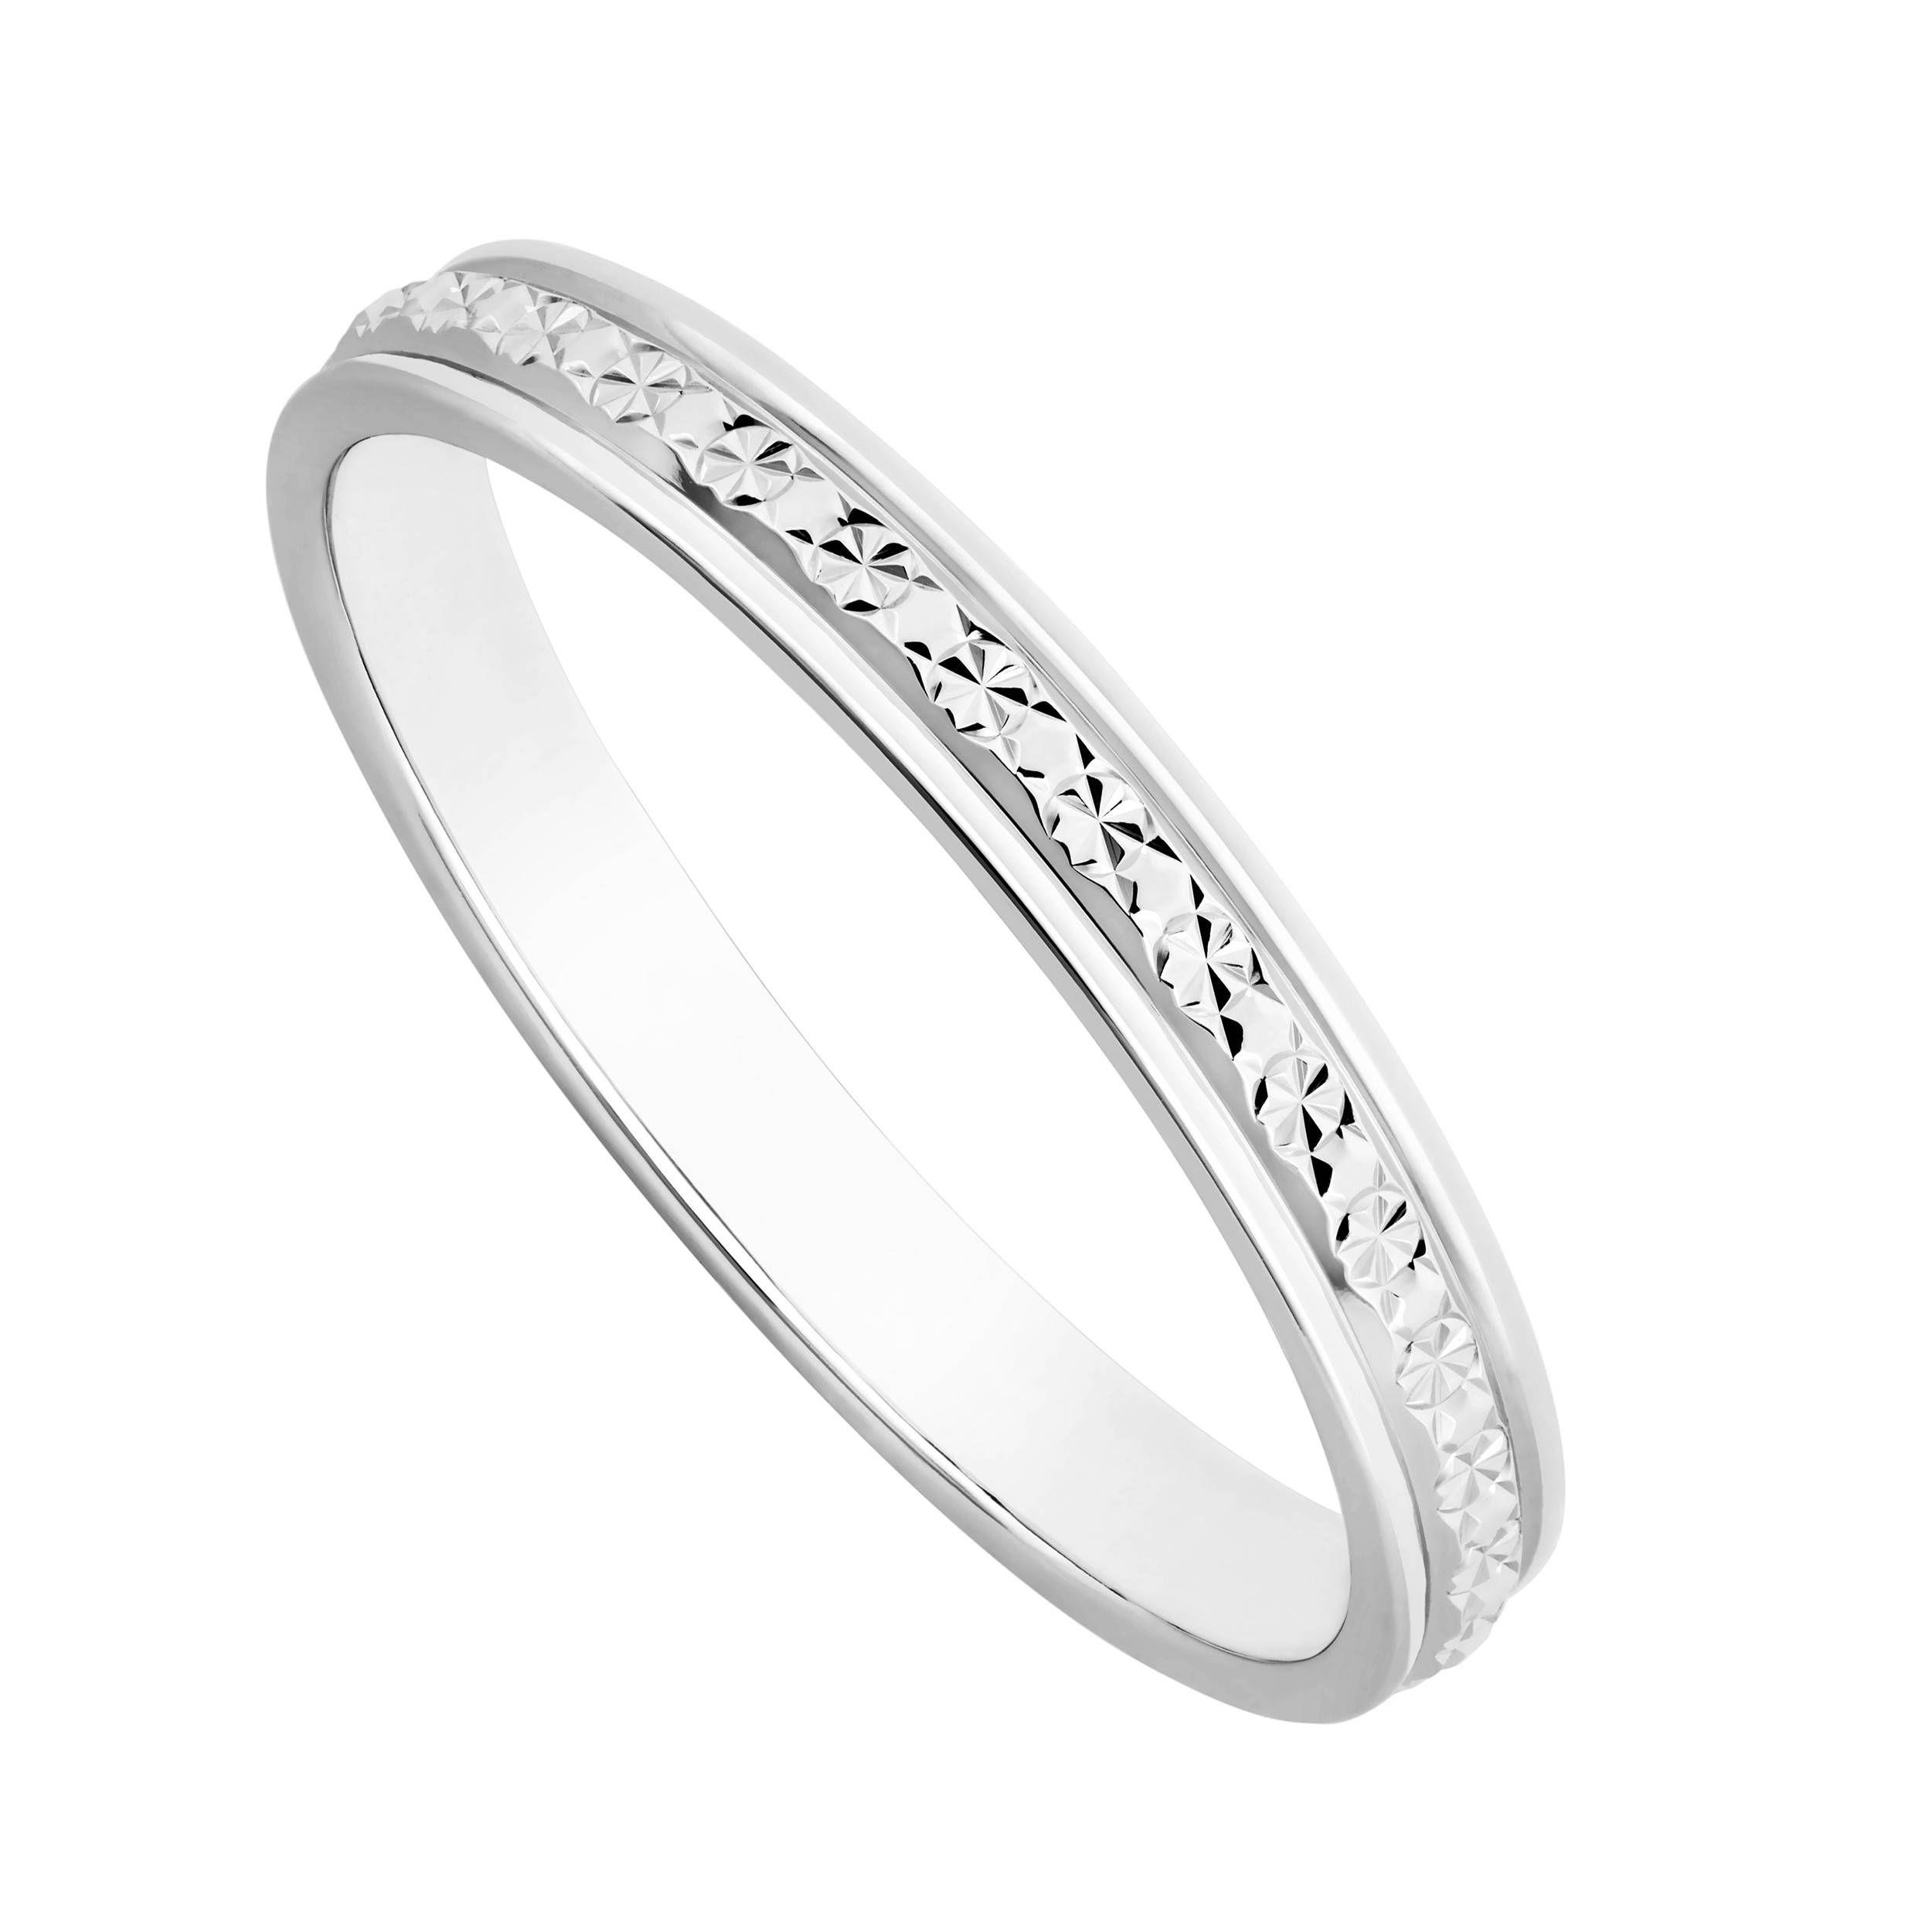 white pave diamond hermes ring s jewelry bands rings gold band herm hercules